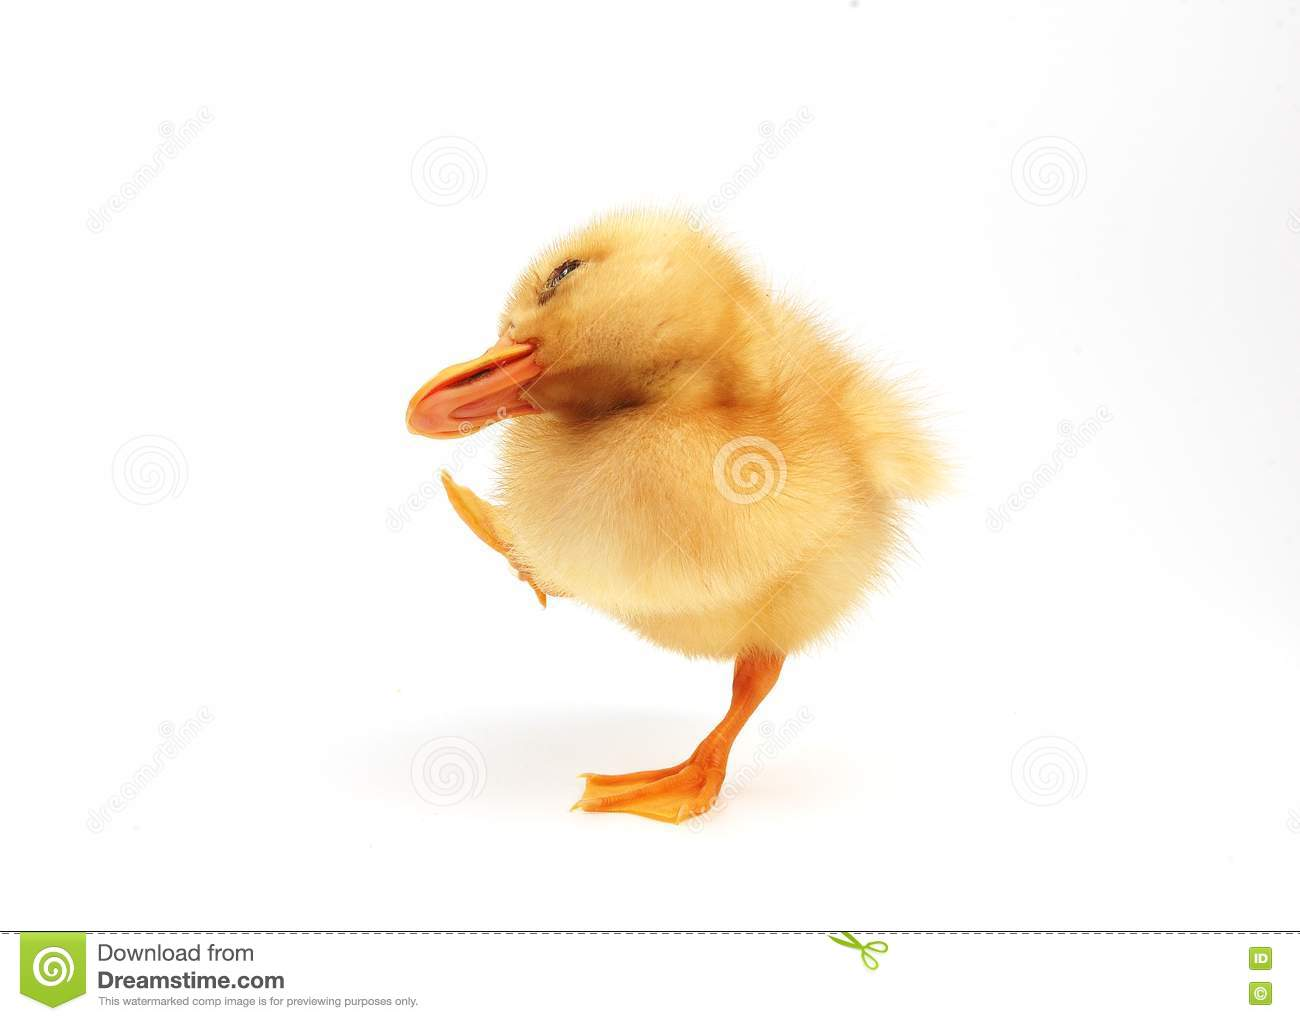 Cute little duck - photo#14